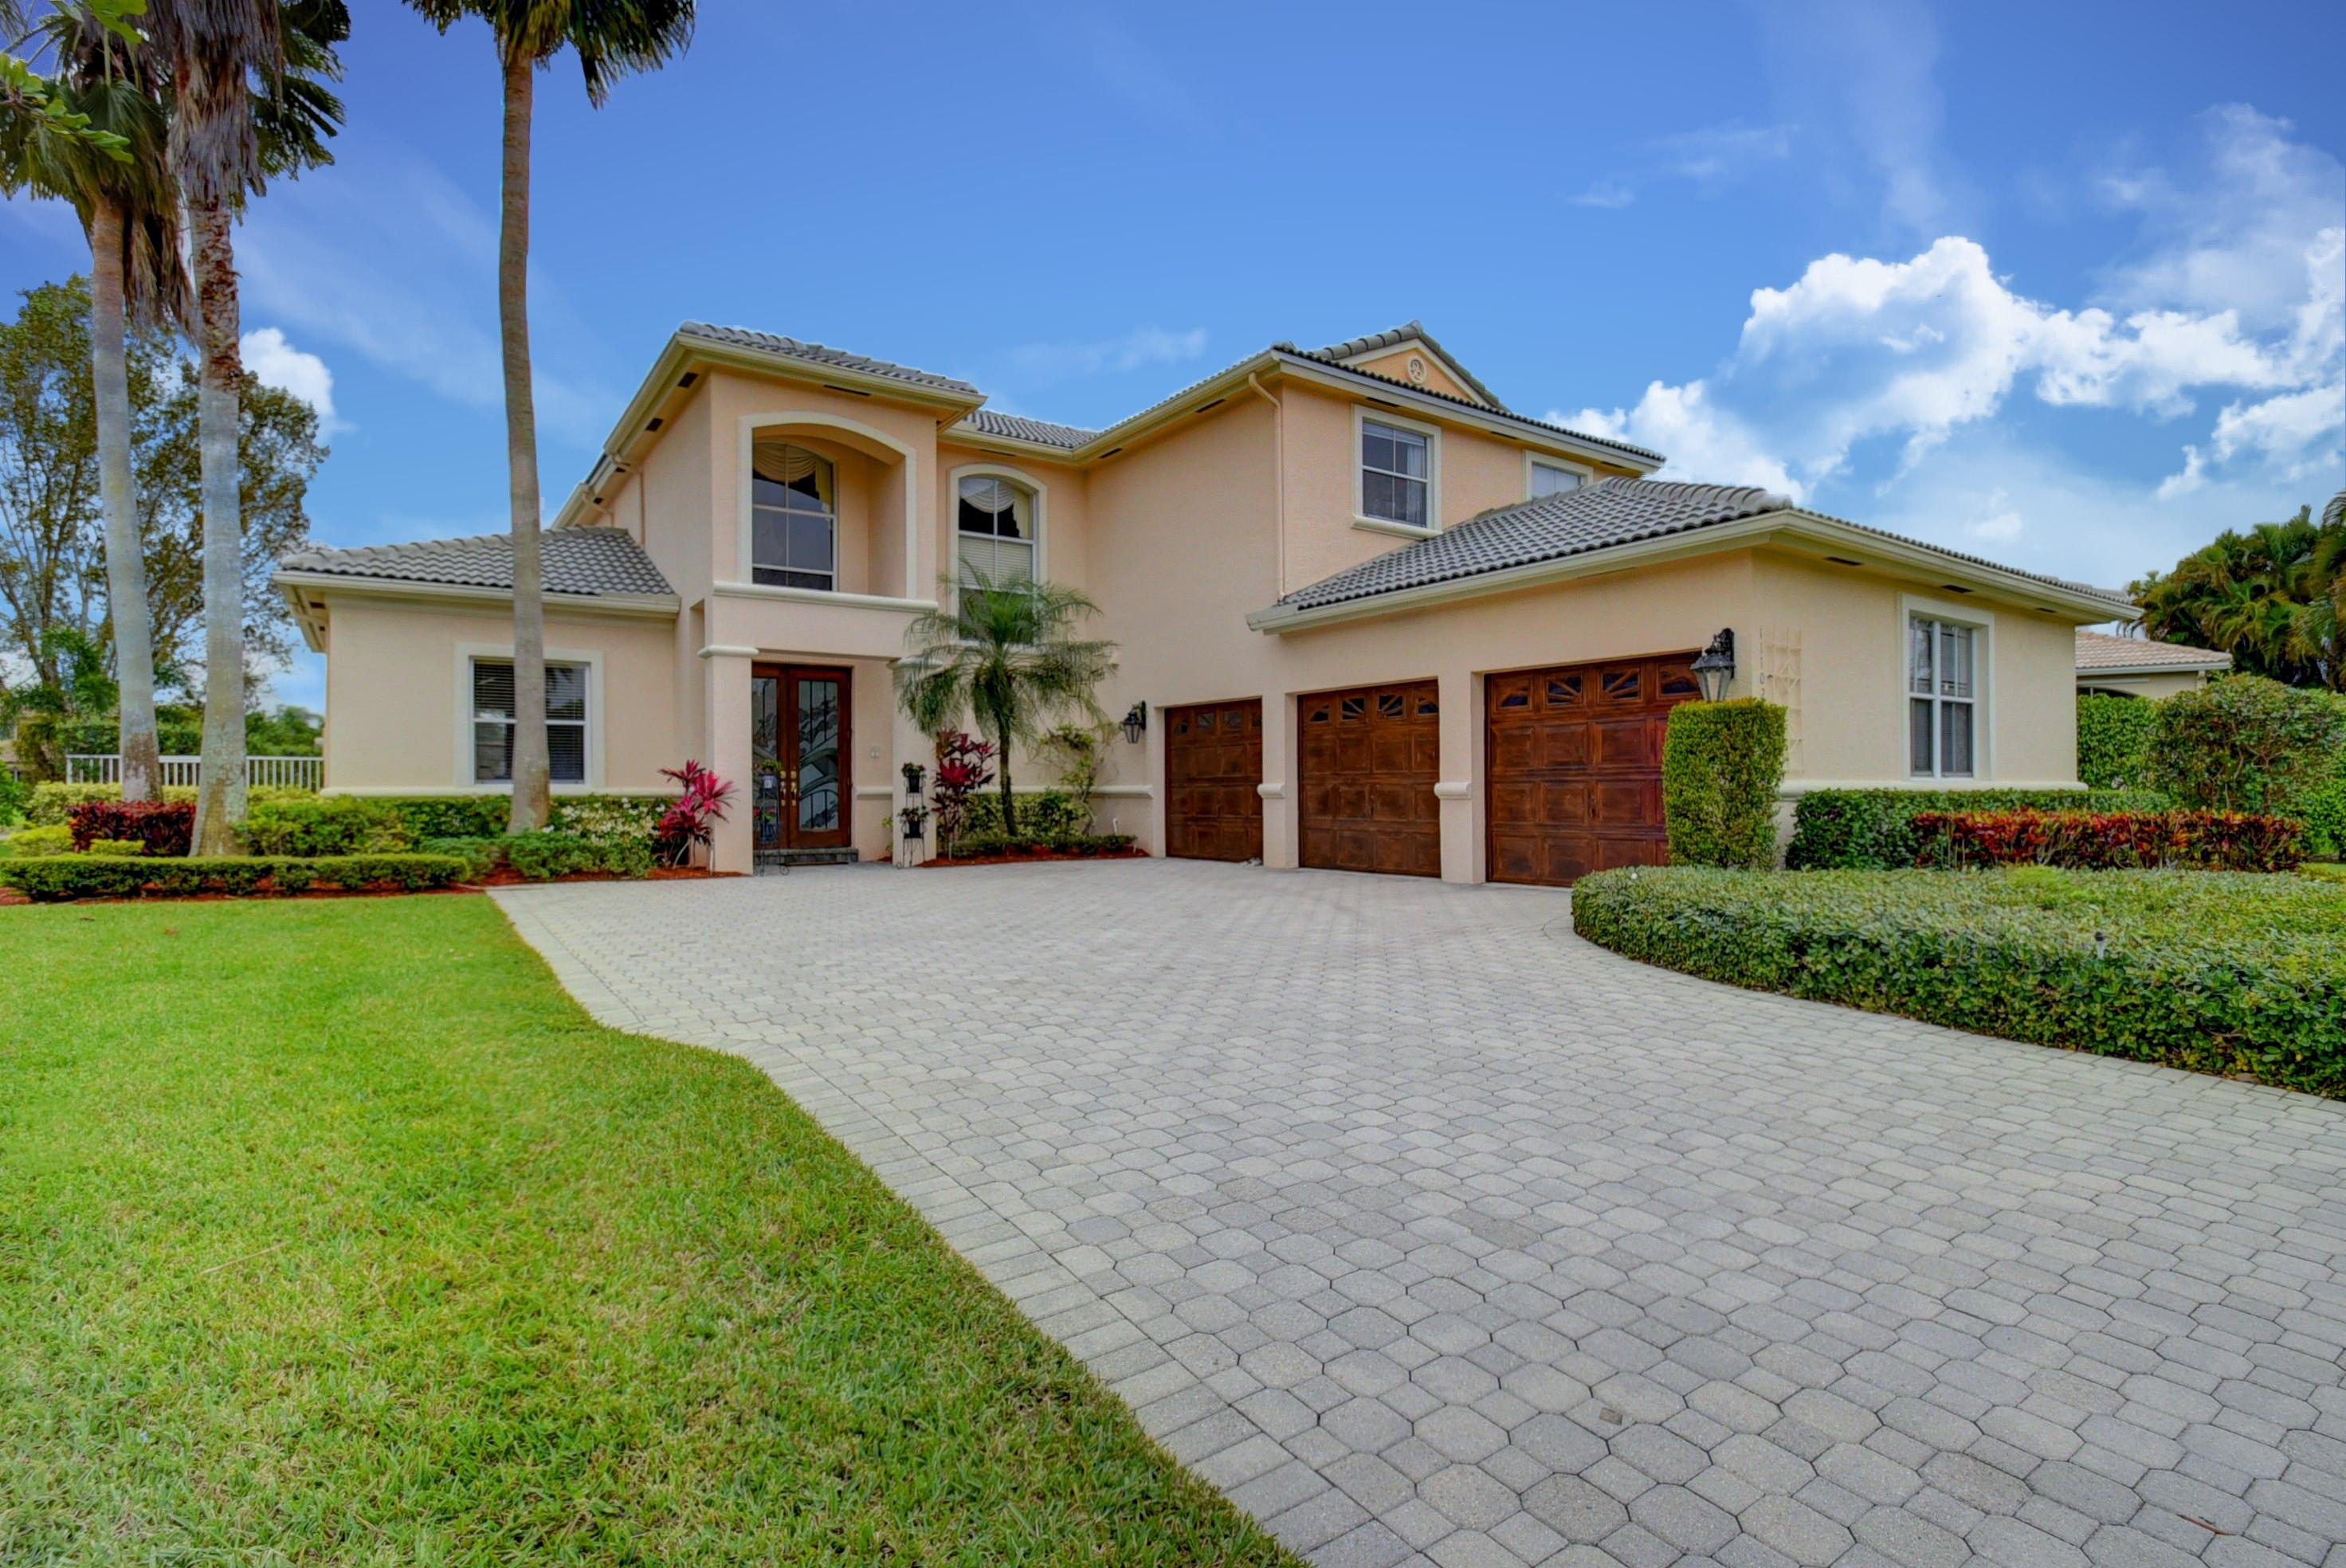 Photo of 11102 Blue Coral Drive, Boca Raton, FL 33498